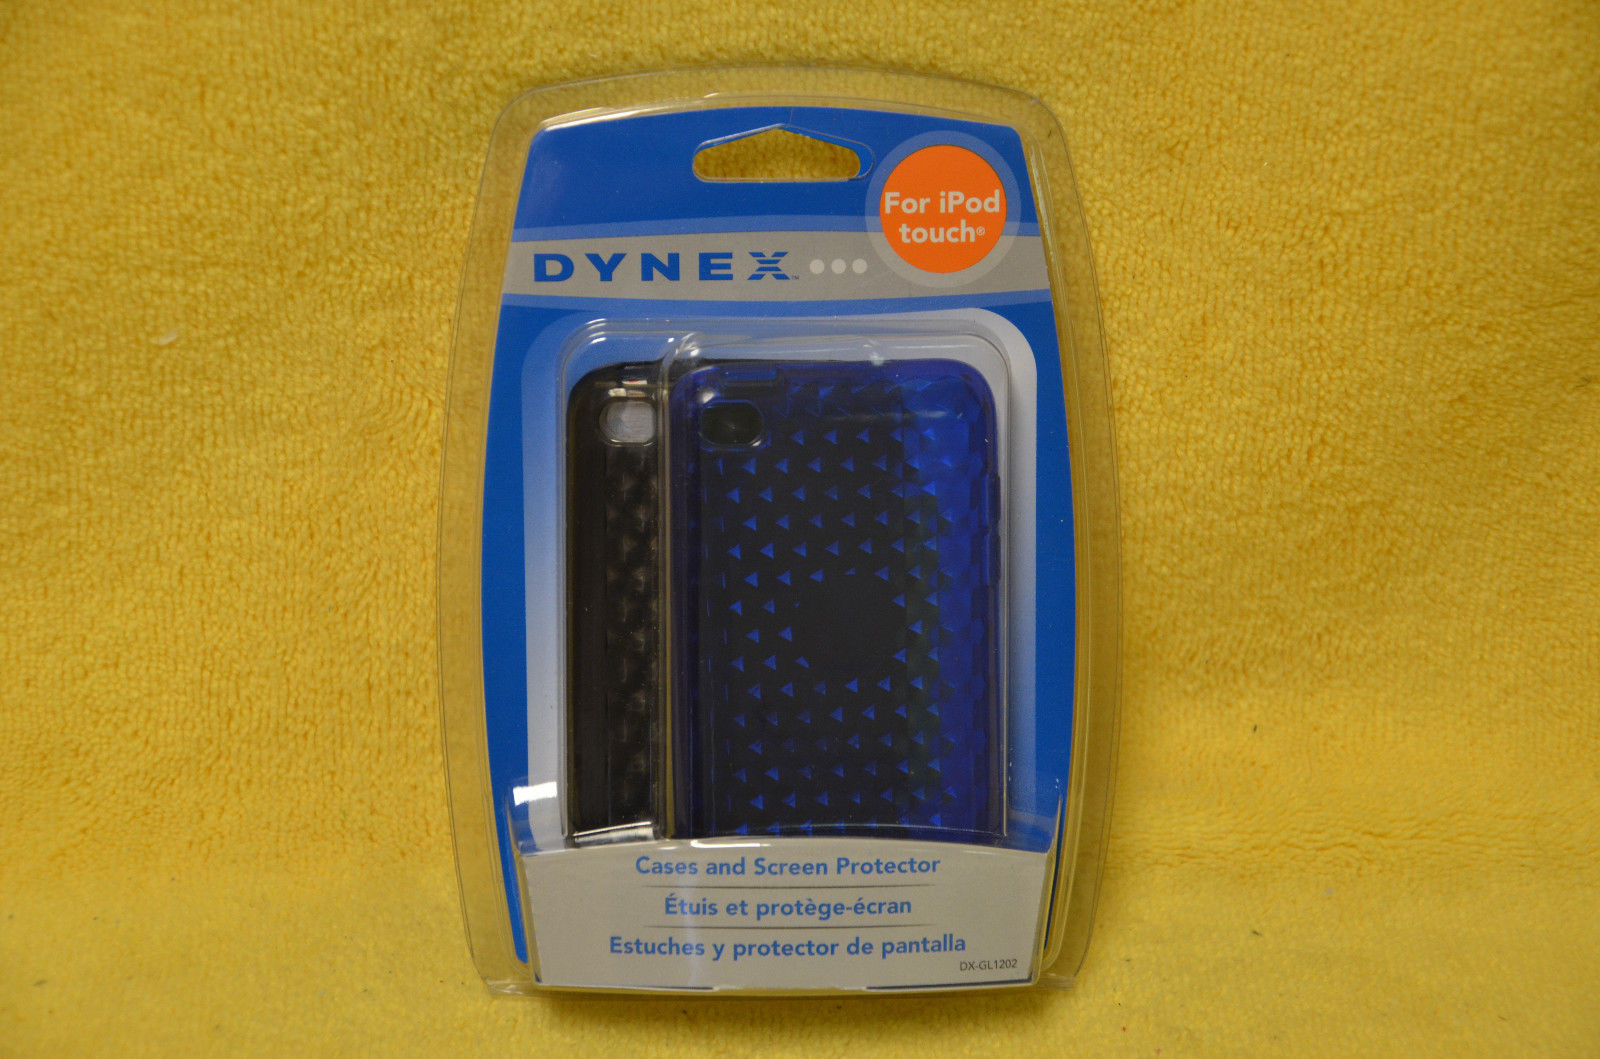 Dynex Transparent Cases iPod Touch 4 Blue Black screen protector DX-GL1202